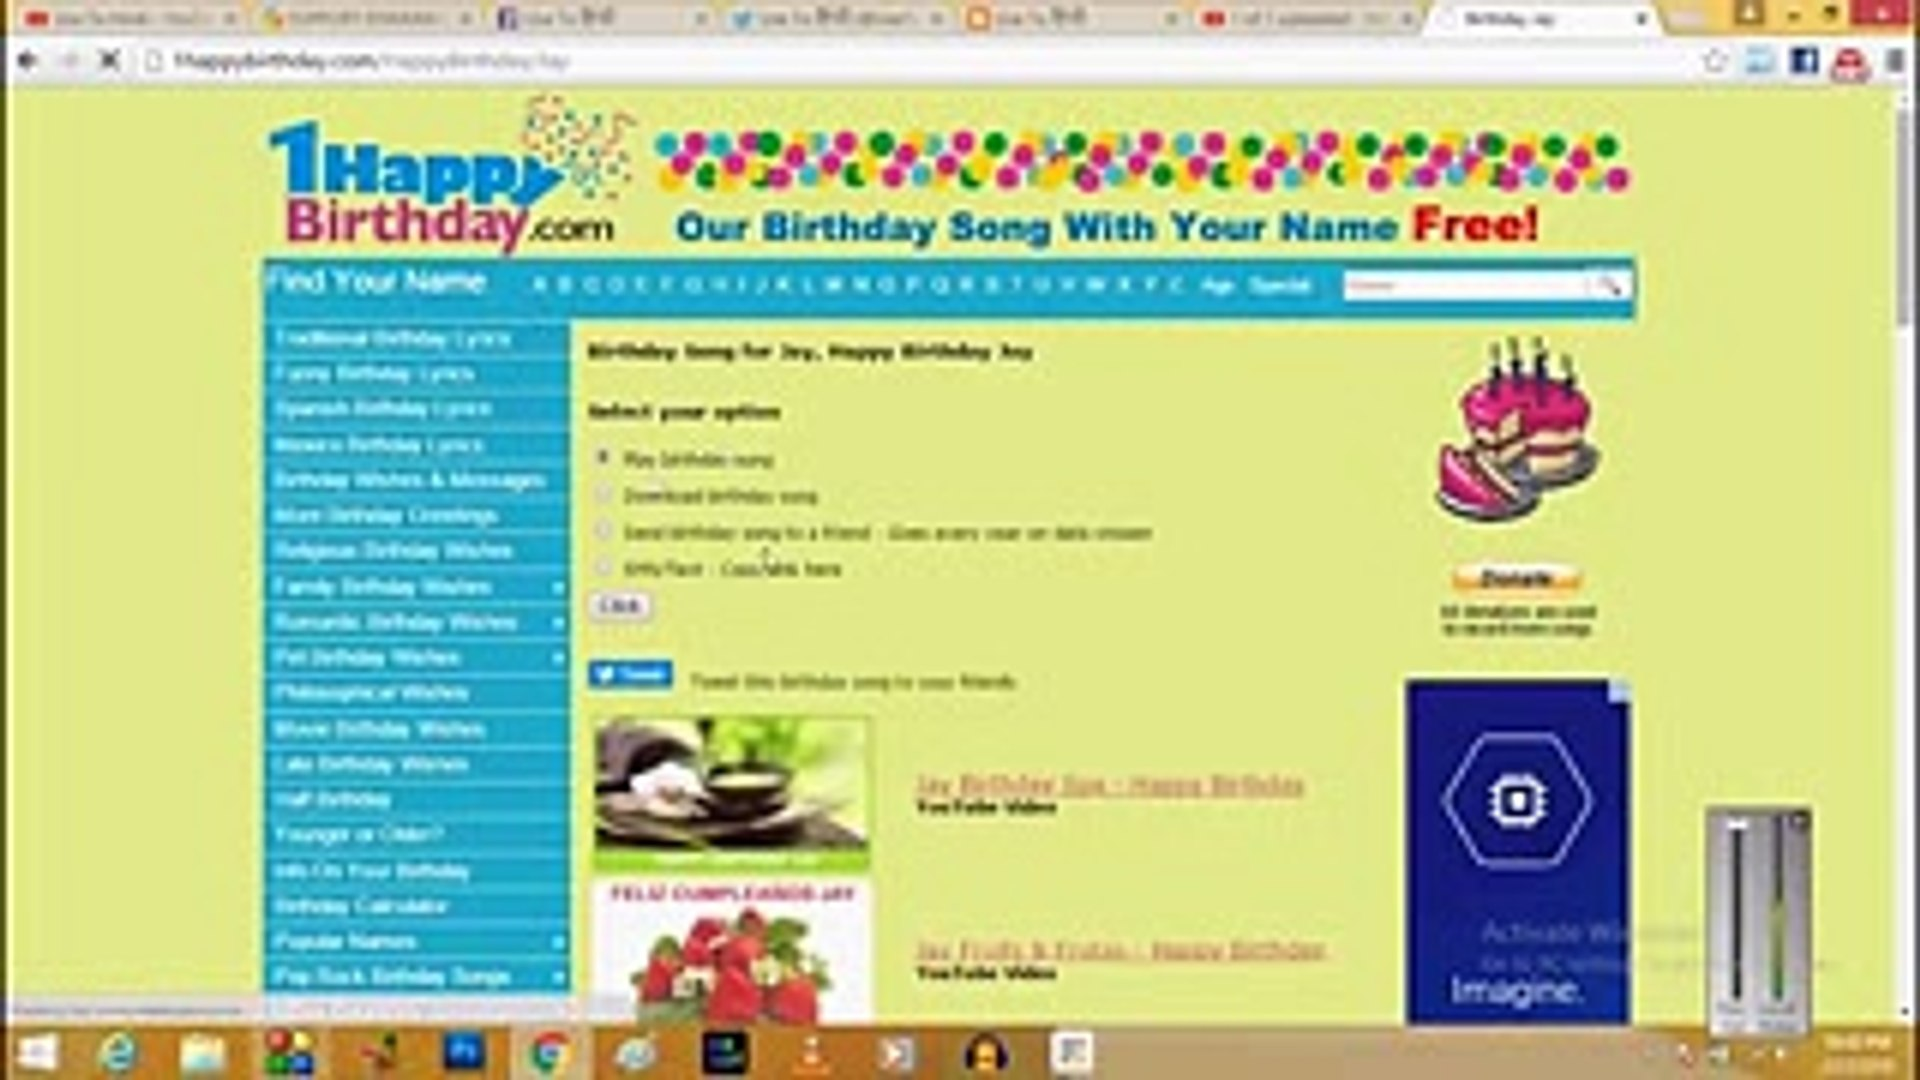 __Hindi__ How To Wish Happy Birthday With Their Name In Song For FREE! Full  HD